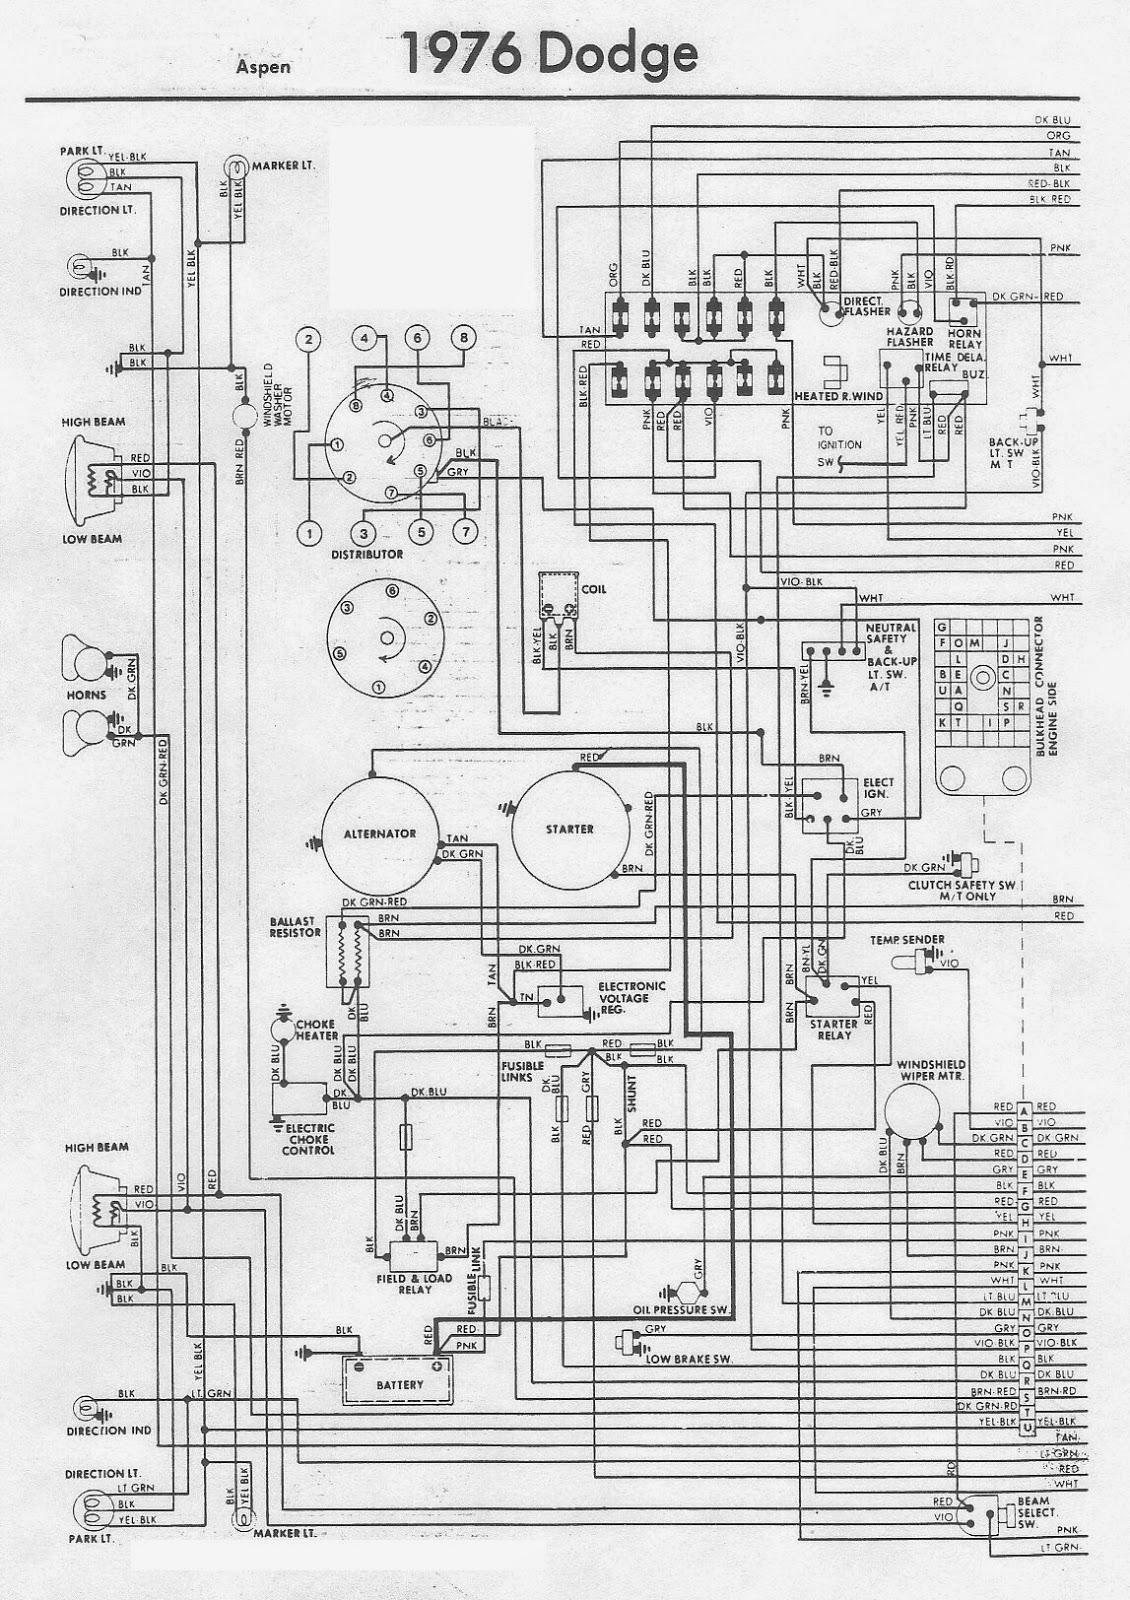 The%2B1976%2BDodge%2BAspen%2BWiring%2BDiagrams%2Ba the 1976 dodge aspen wiring diagram electrical system circuit dodge wiring diagrams at crackthecode.co